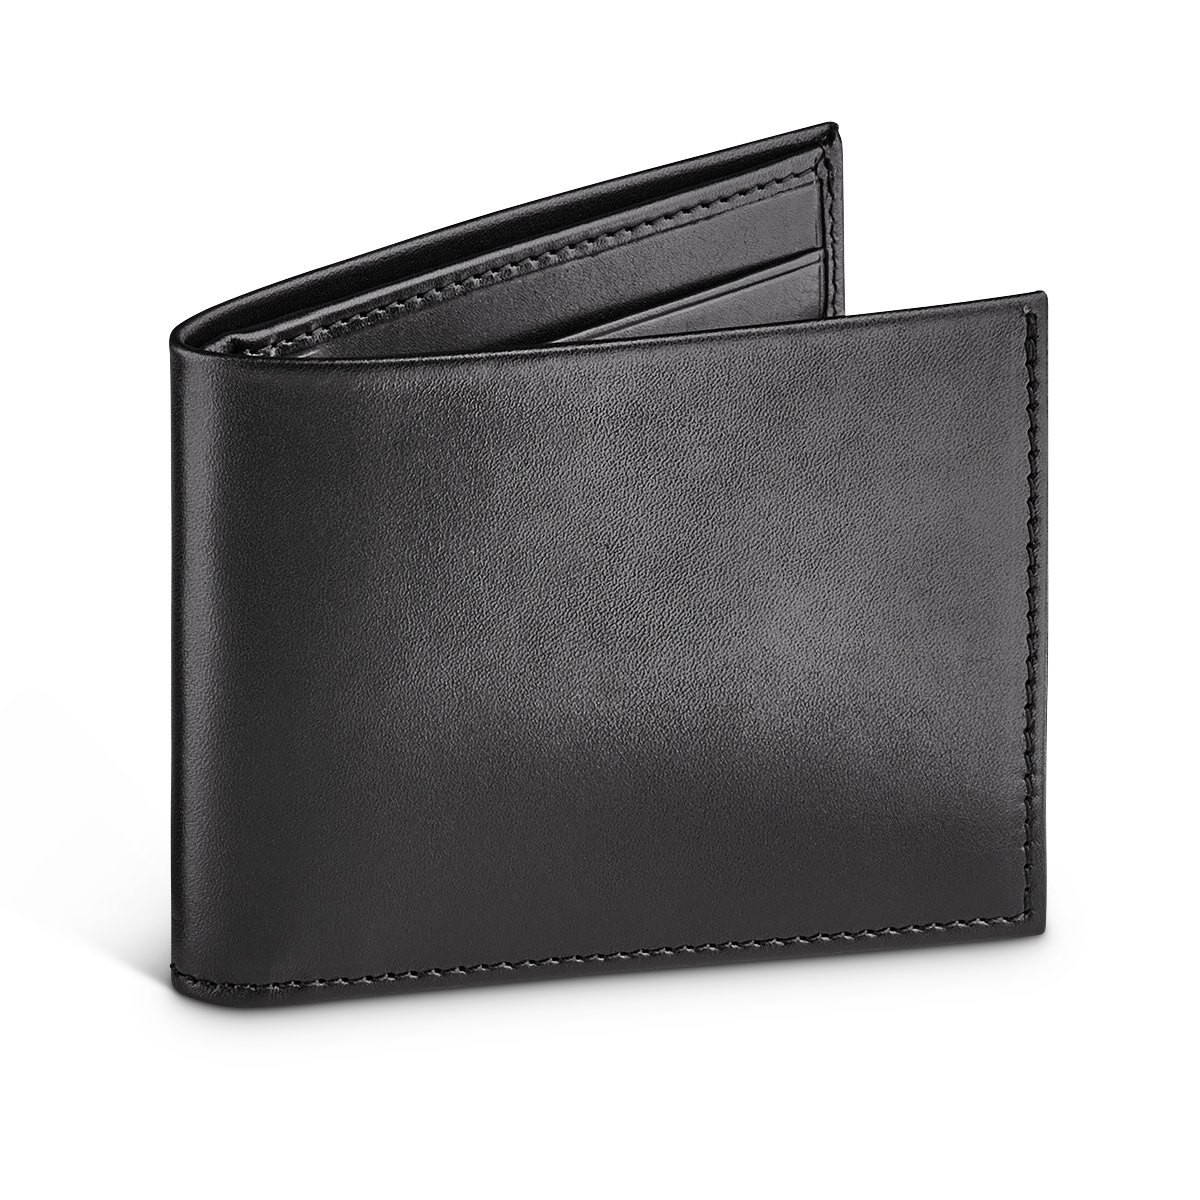 MORAL CODE The Turner: Premium Hand Crafted Slim Leather Billfold Wallet